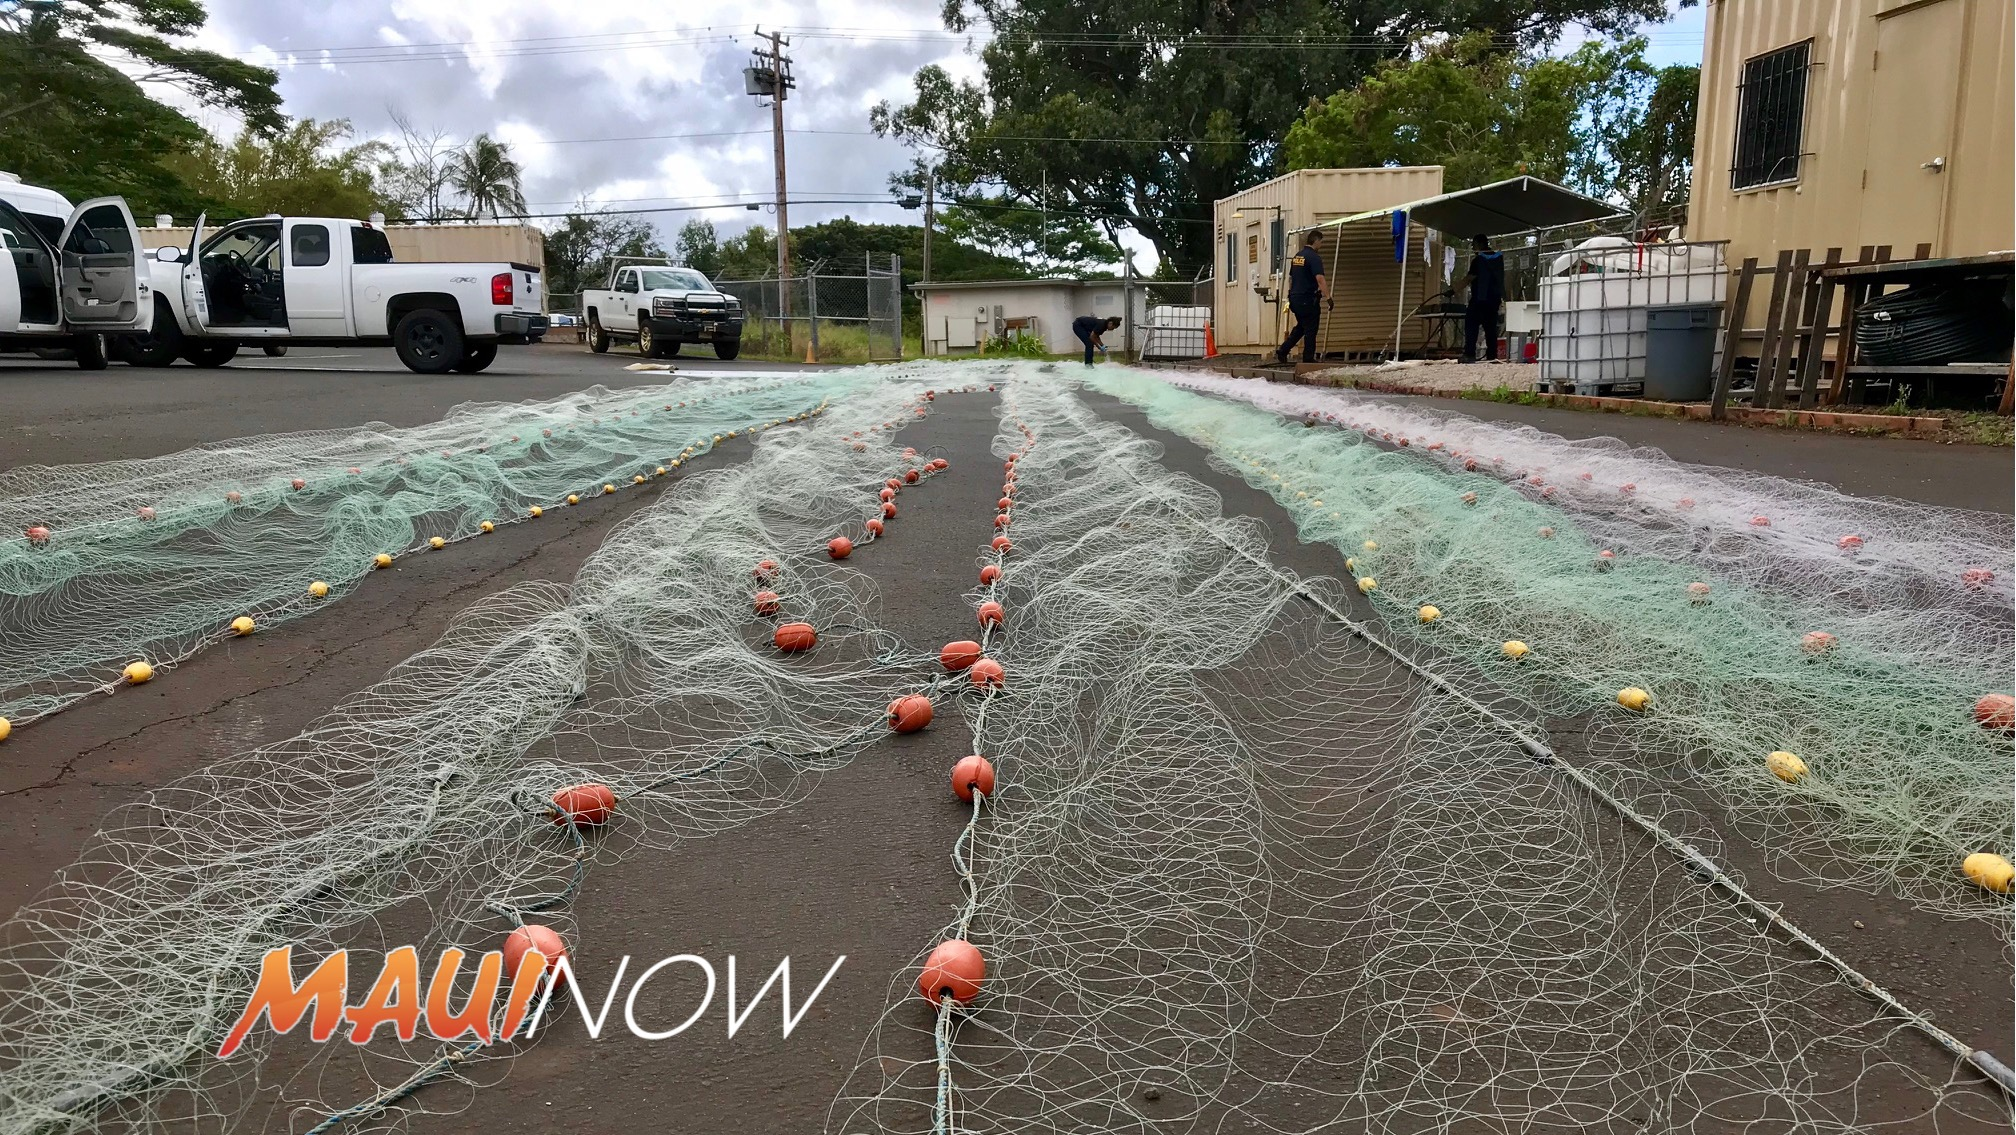 1,000 Feet of Illegal Lay Net Confiscated